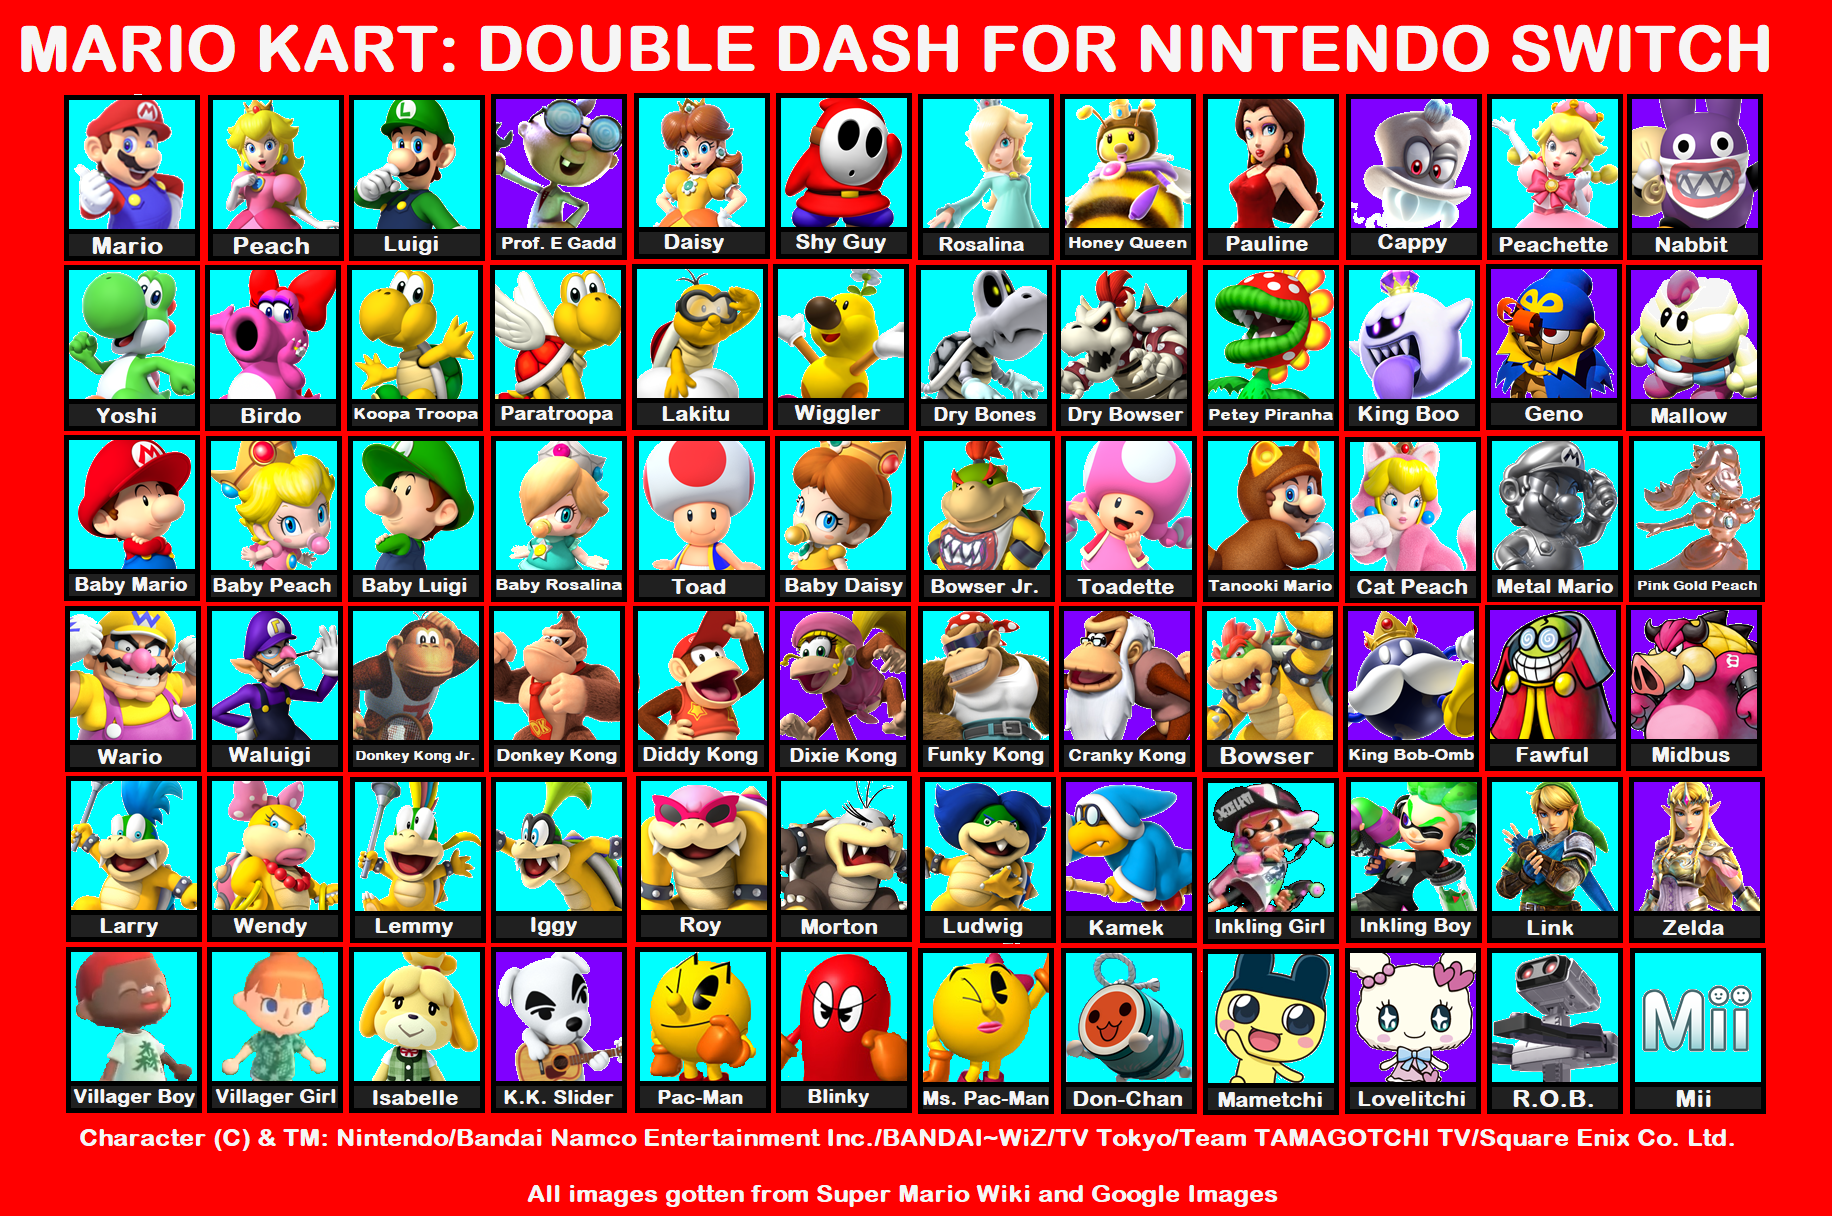 Mario Kart Double Dash For Nintendo Switch By Timothythepainter On Deviantart